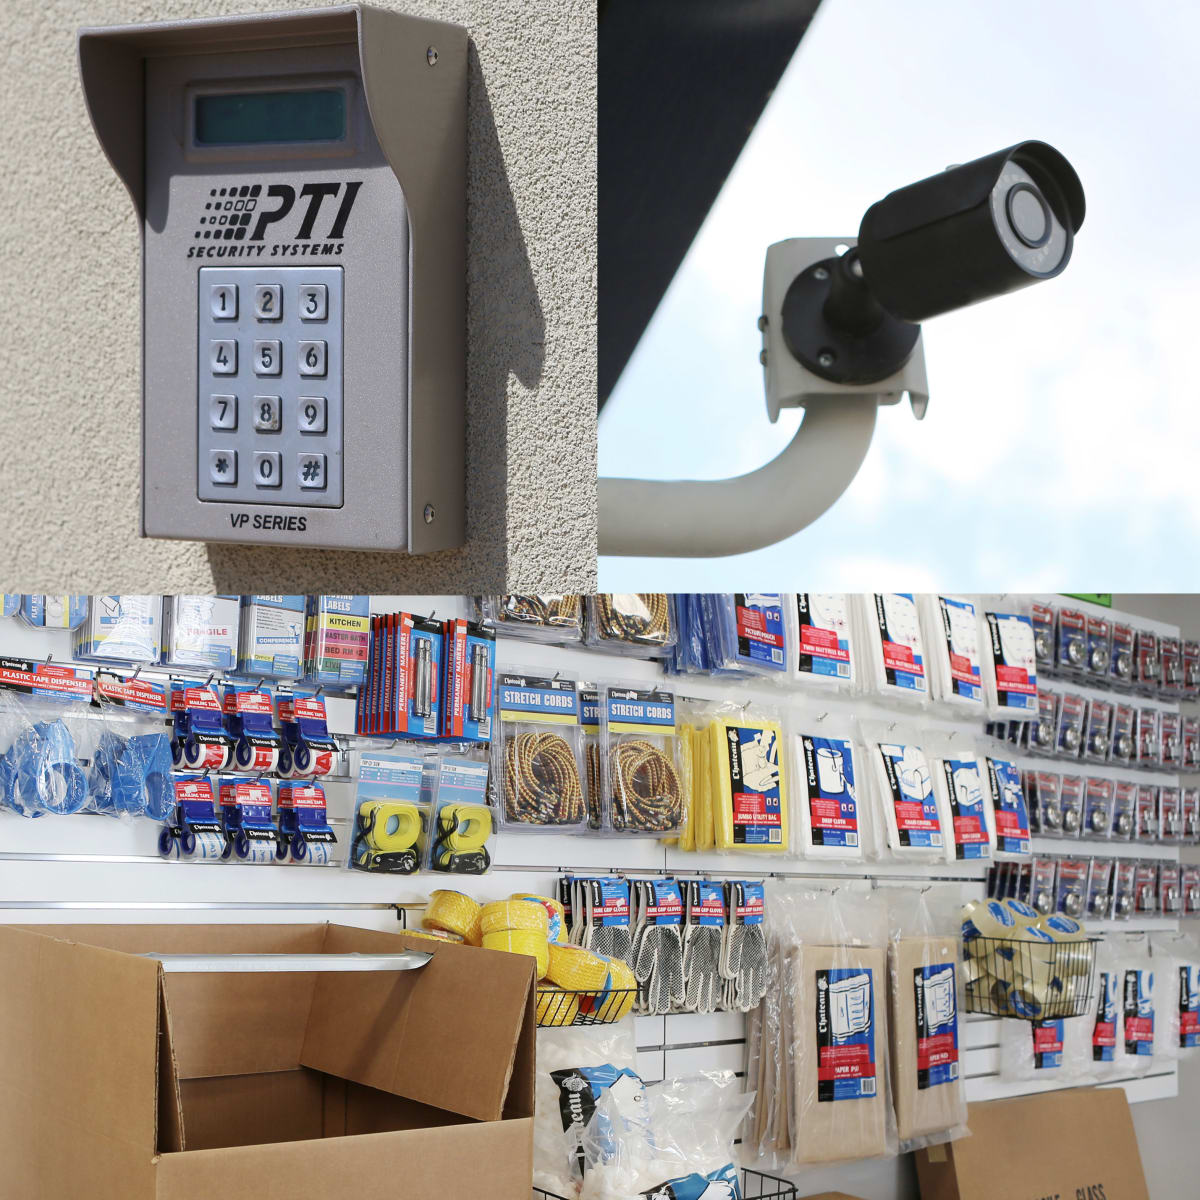 We provide 24 hour security monitoring and sell various moving and packing supplies at Midgard Self Storage in Newberry, Florida